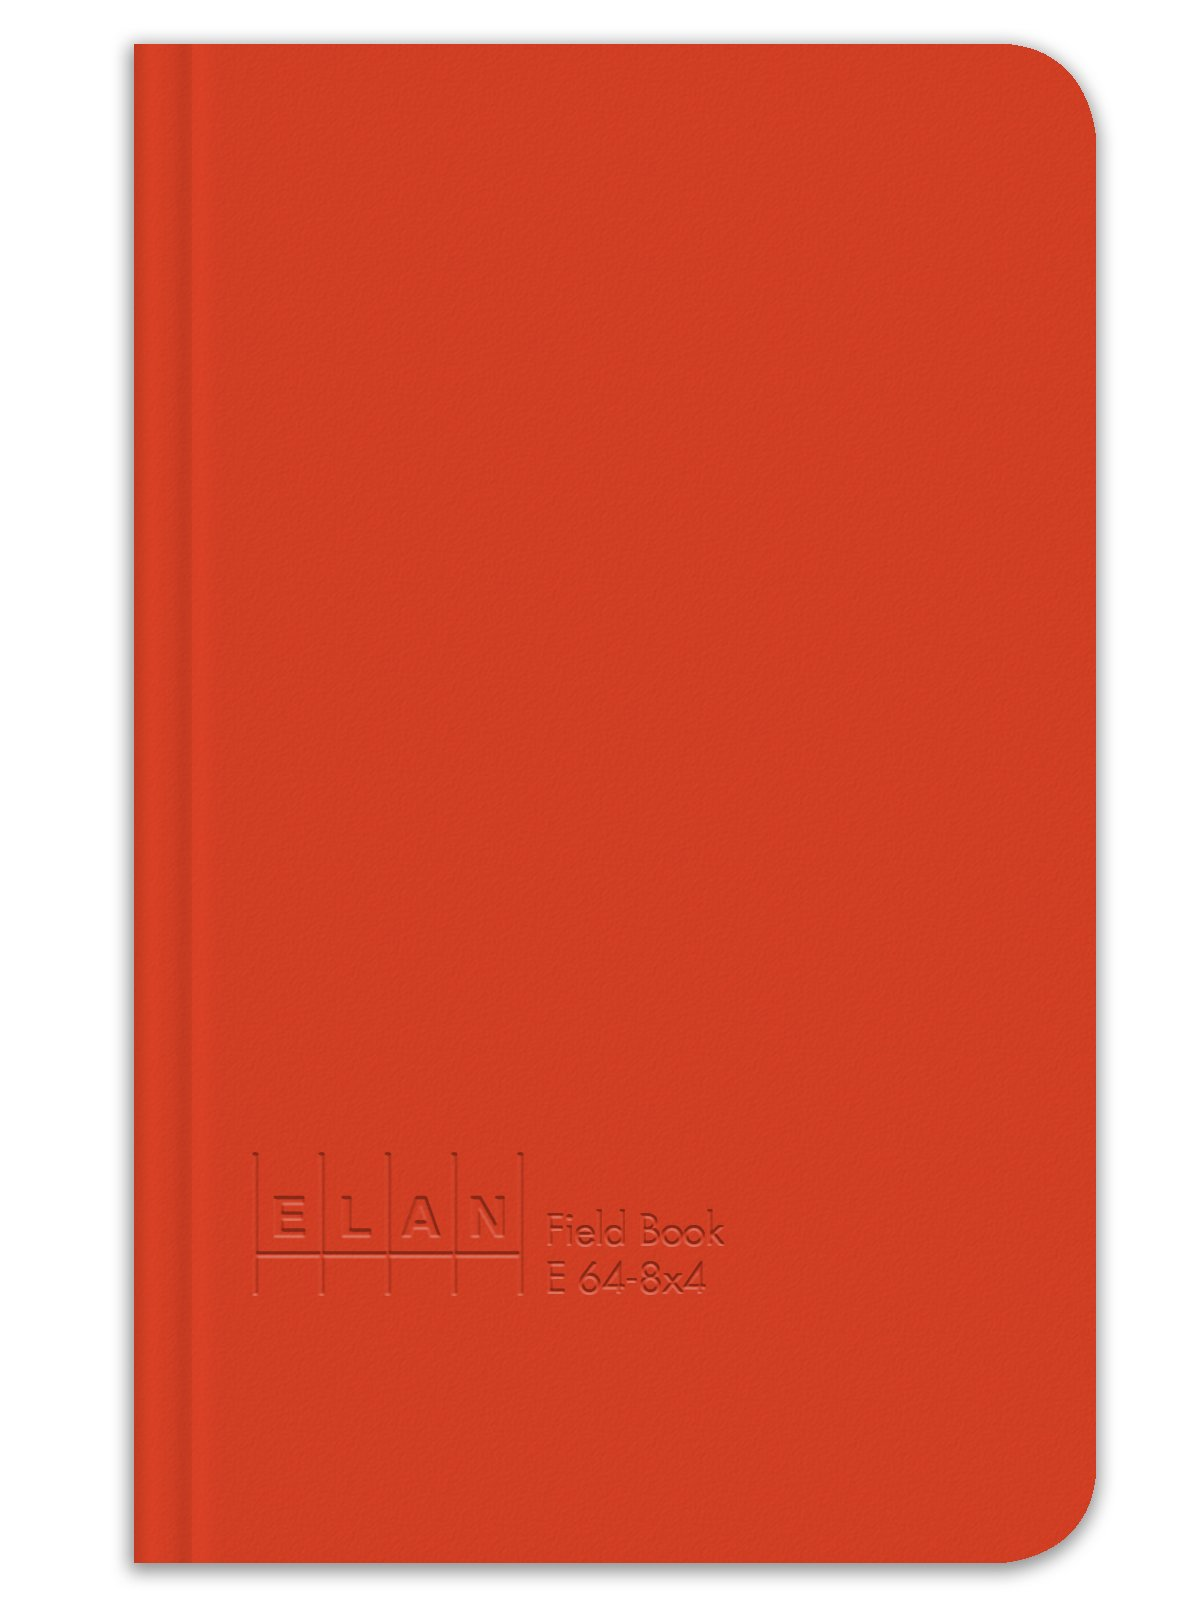 Elan Publishing Company E64-8x4 Field Surveying Book 4 ⅝ x 7 ¼, Bright Orange Cover (Pack of 12) by Elan Publishing Company